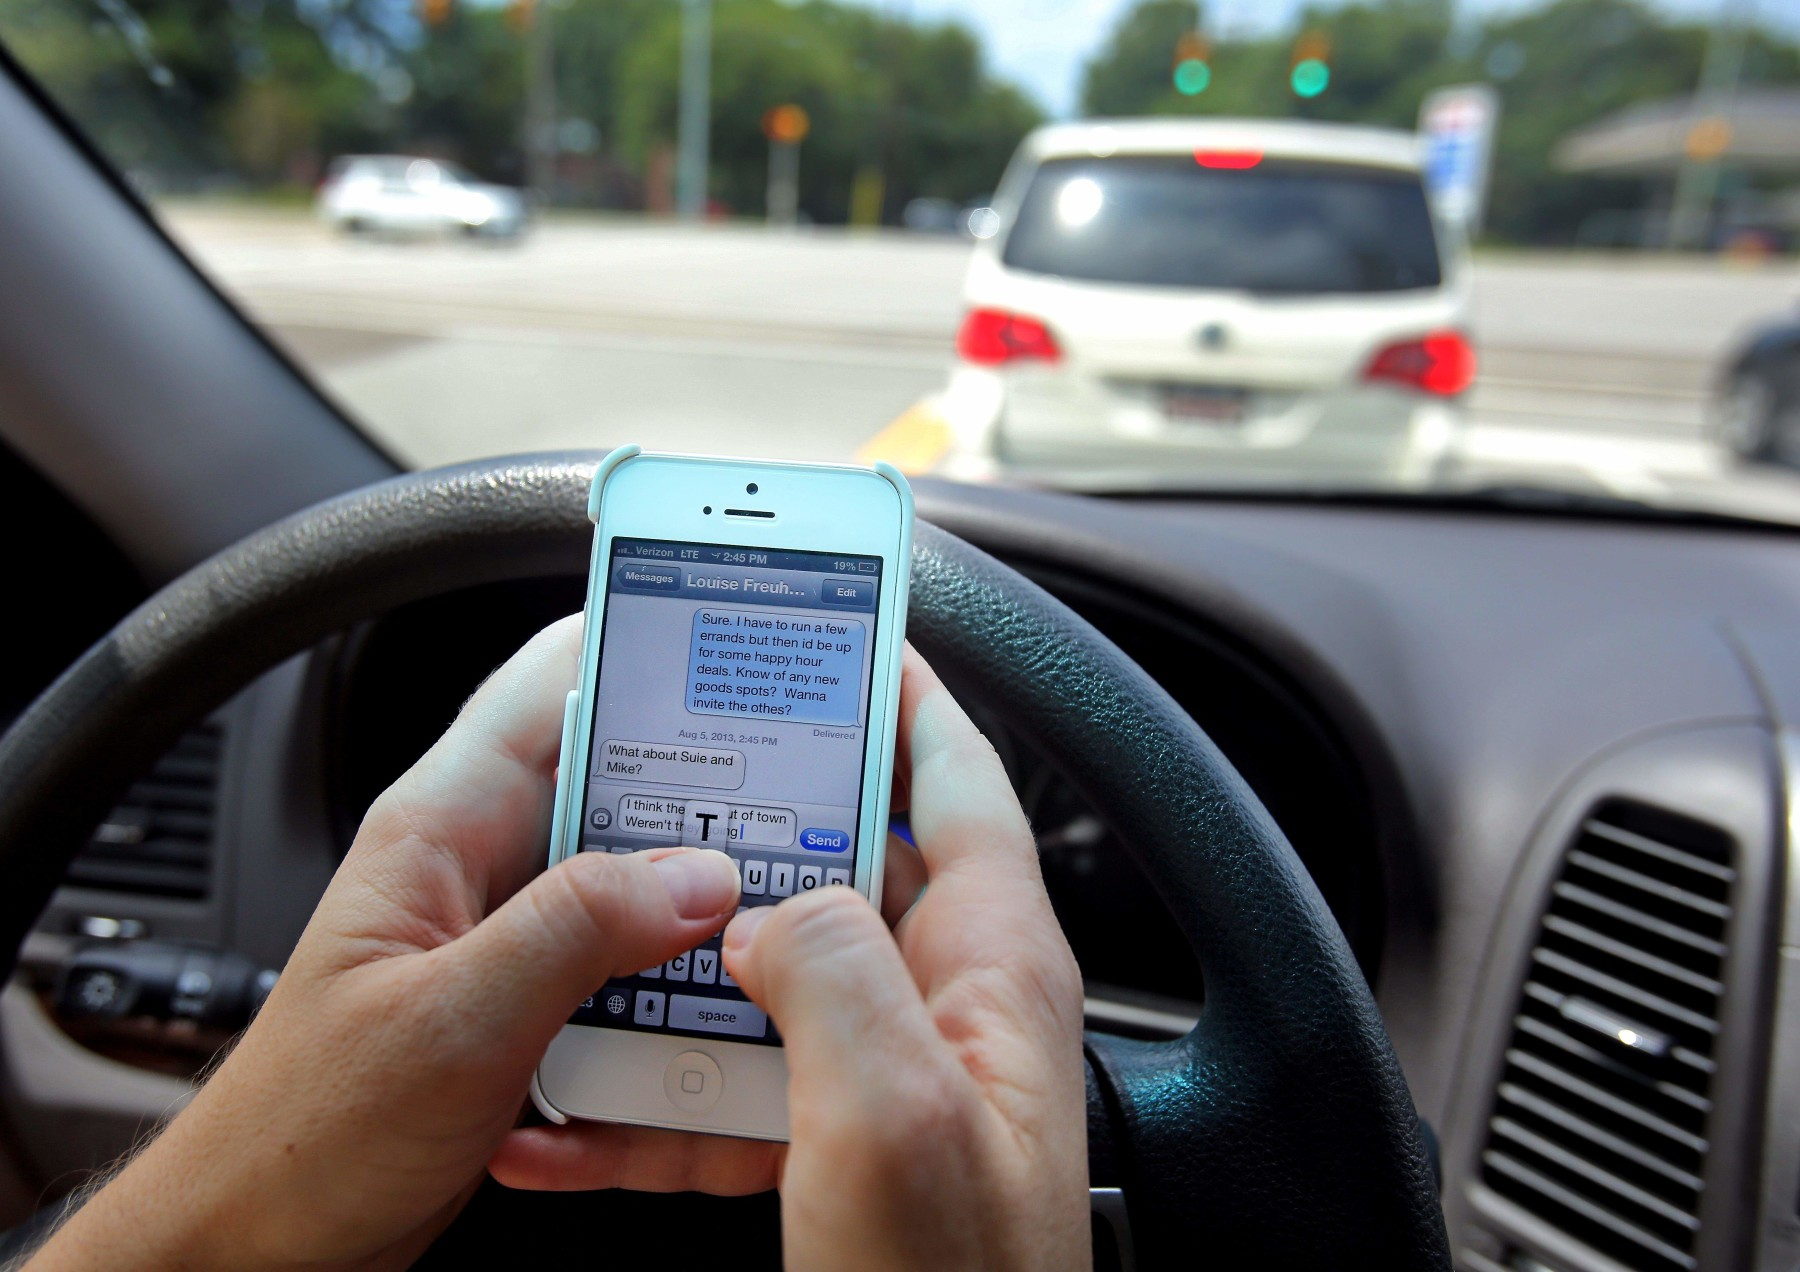 017 Essay Example Distracted Driving Texting Fascinating Canada Conclusion Informative Full